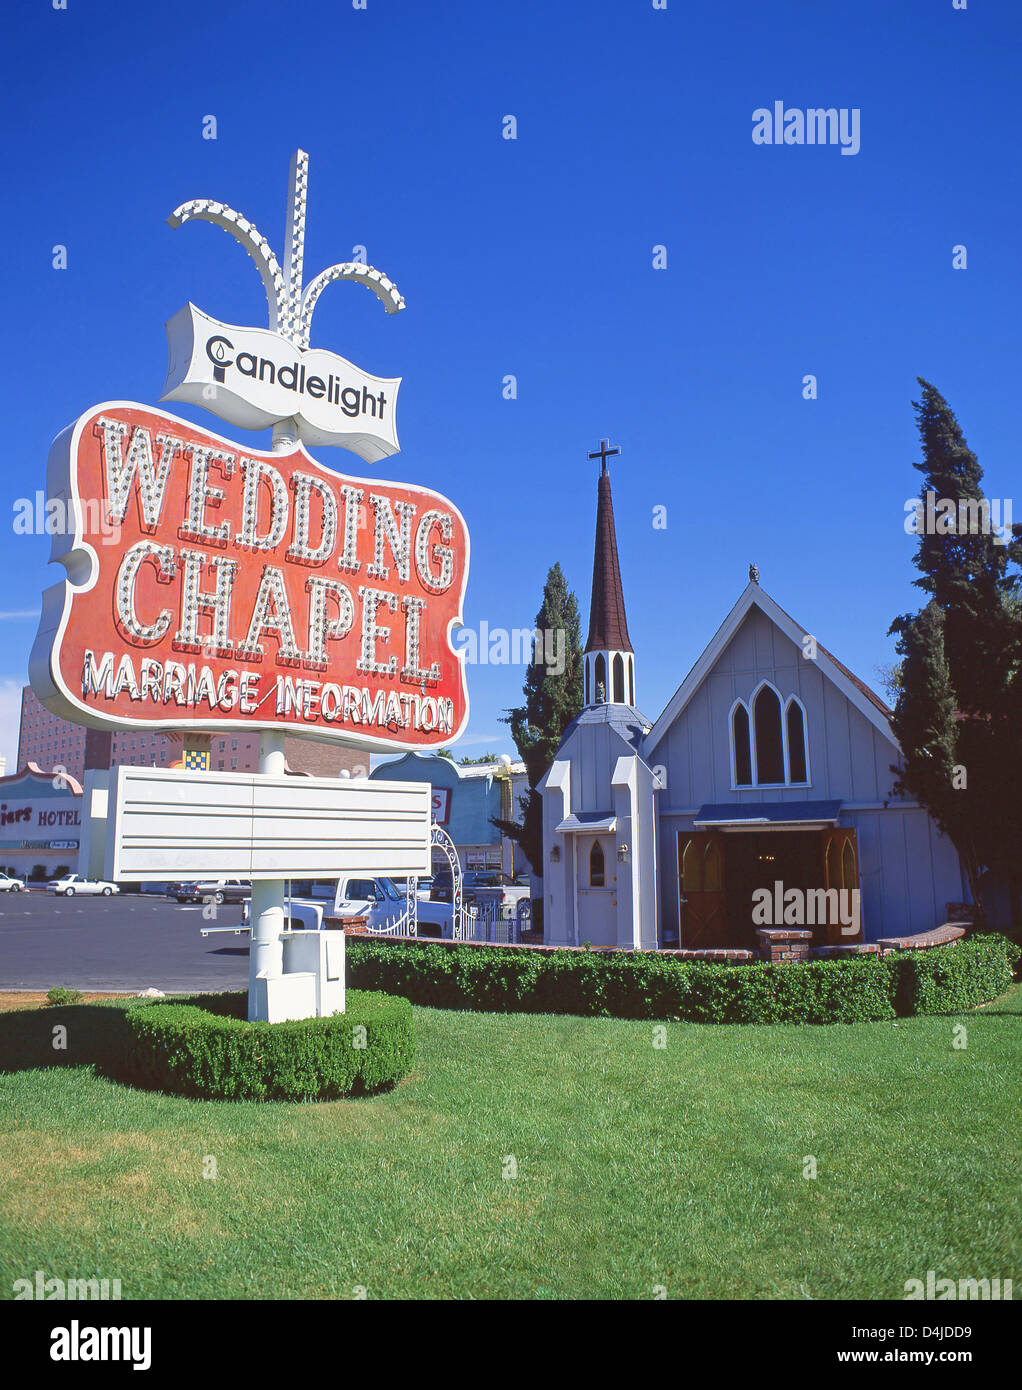 Candlelight Wedding Chapel On The Vegas Strip Las Nevada United States Of America